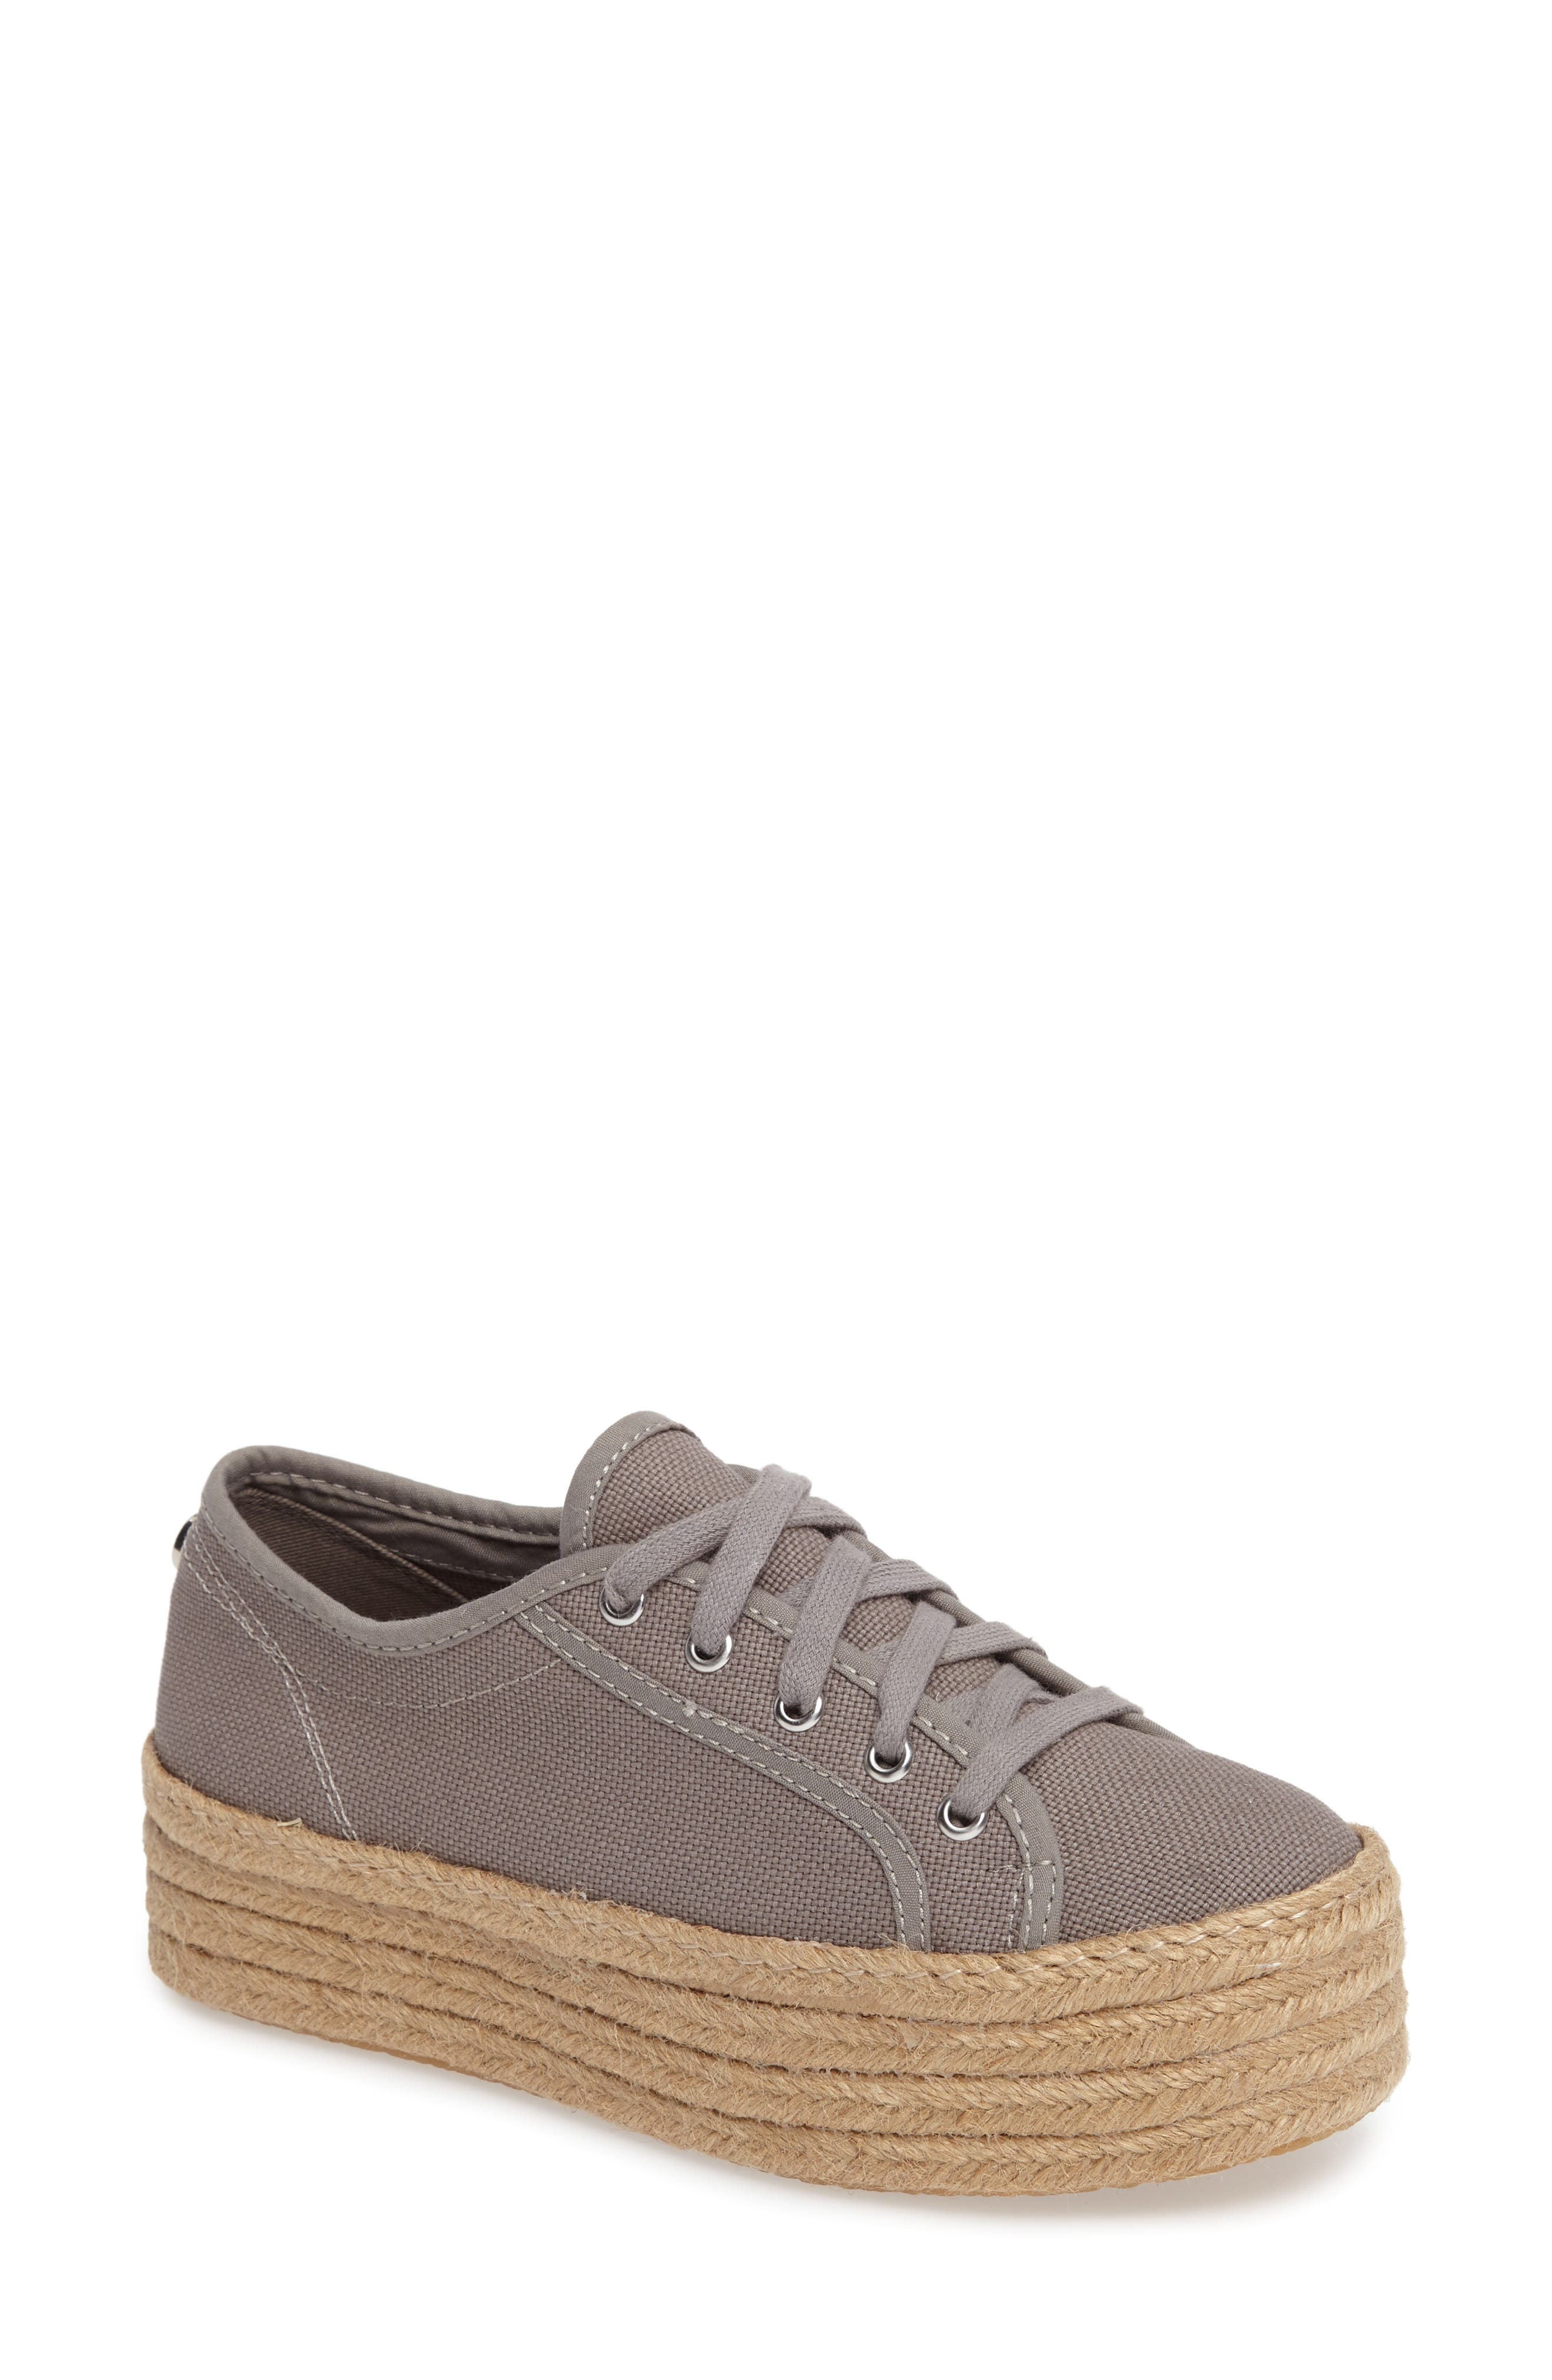 Alternate Image 1 Selected - Steve Madden Hampton Platform Sneaker (Women)